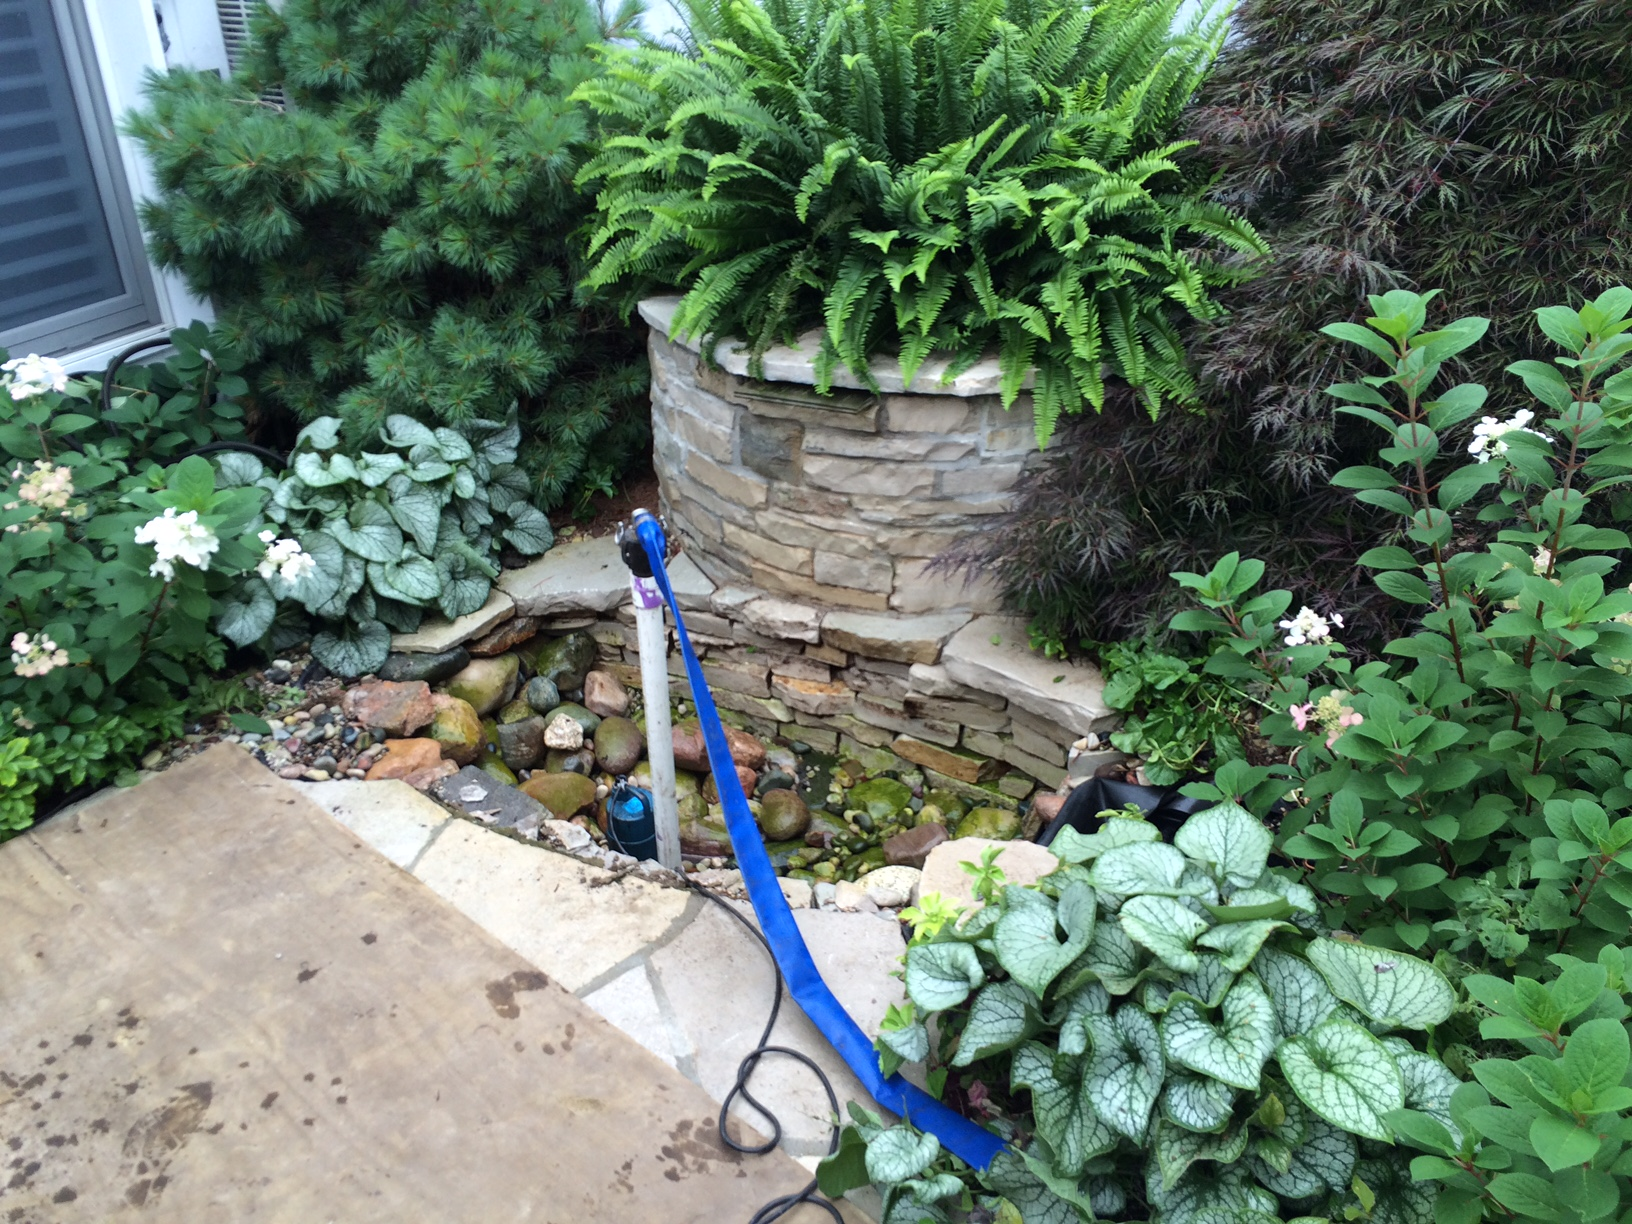 Make your pond functional and beautiful again! Call Waterpaw Ponds to repair your pond.